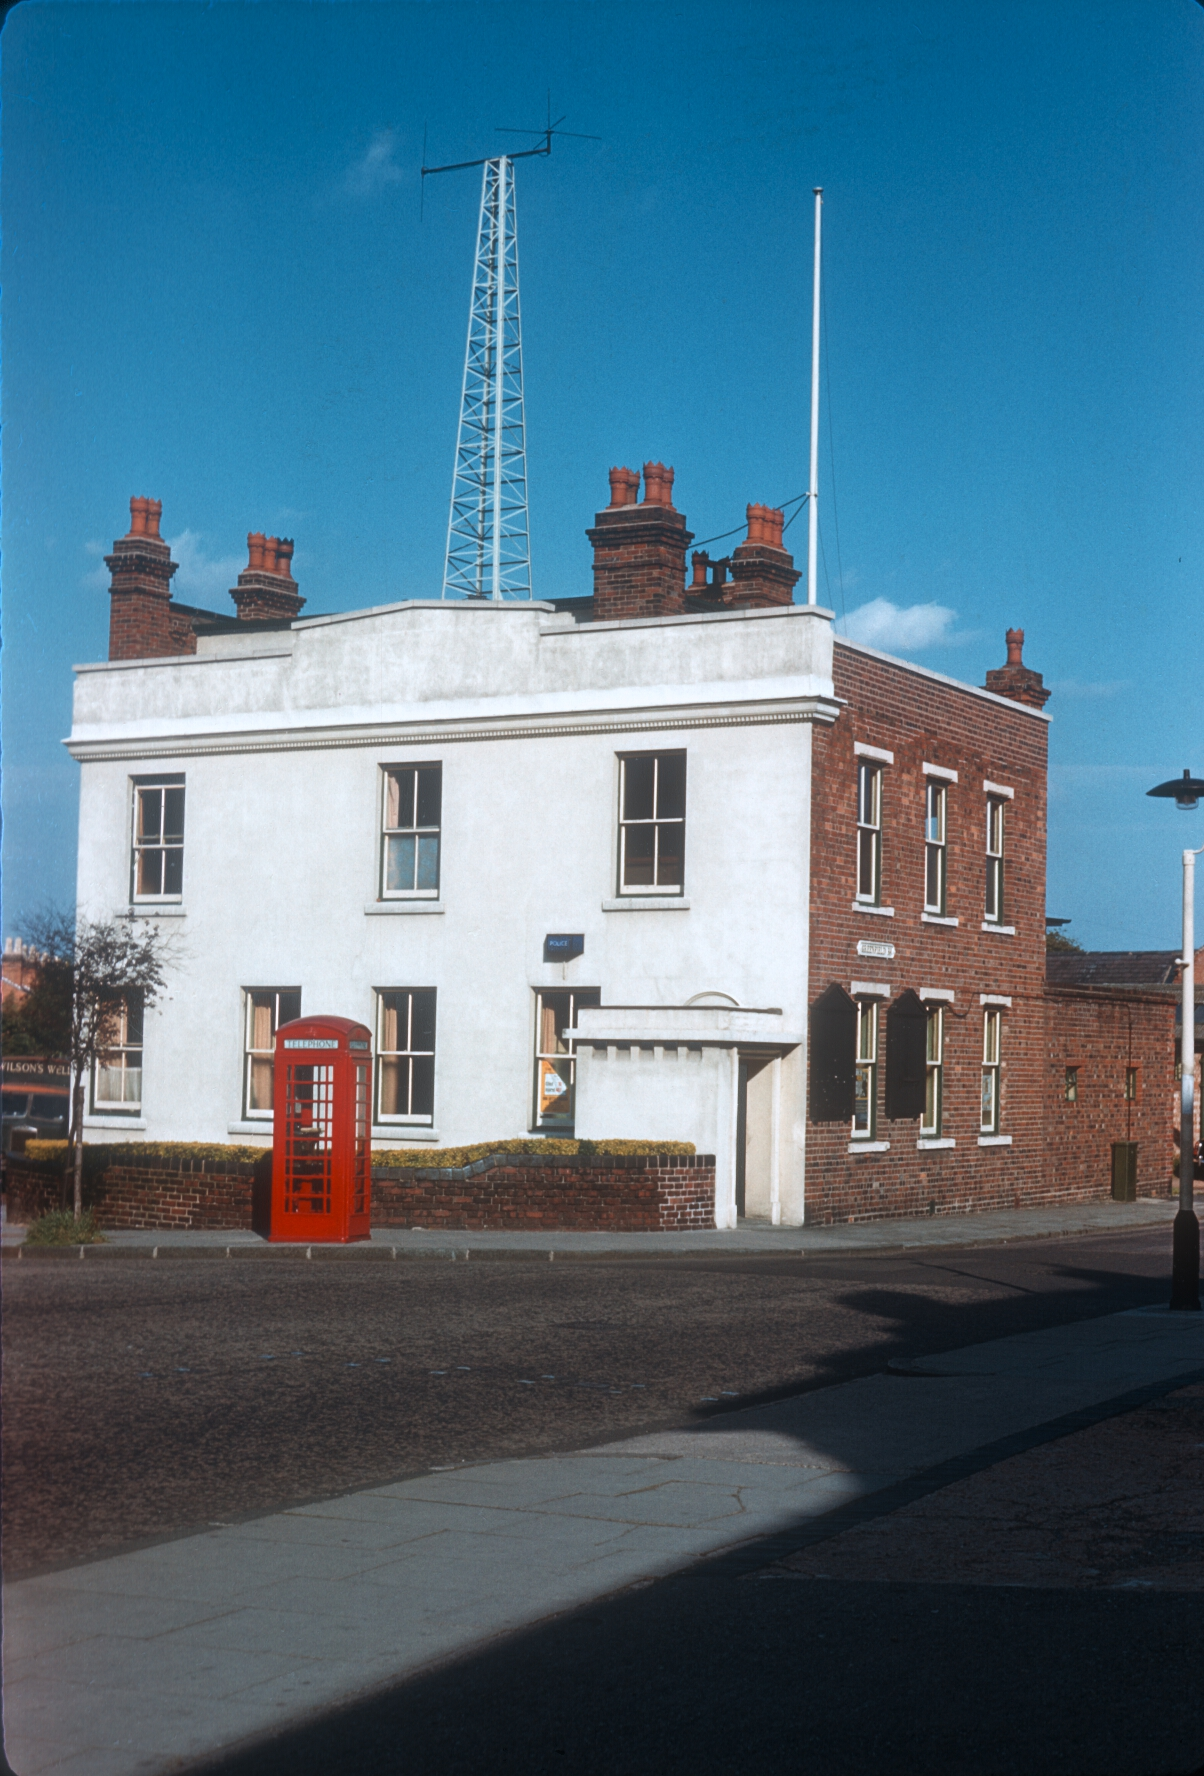 Harborne Police Station Epapers Repository